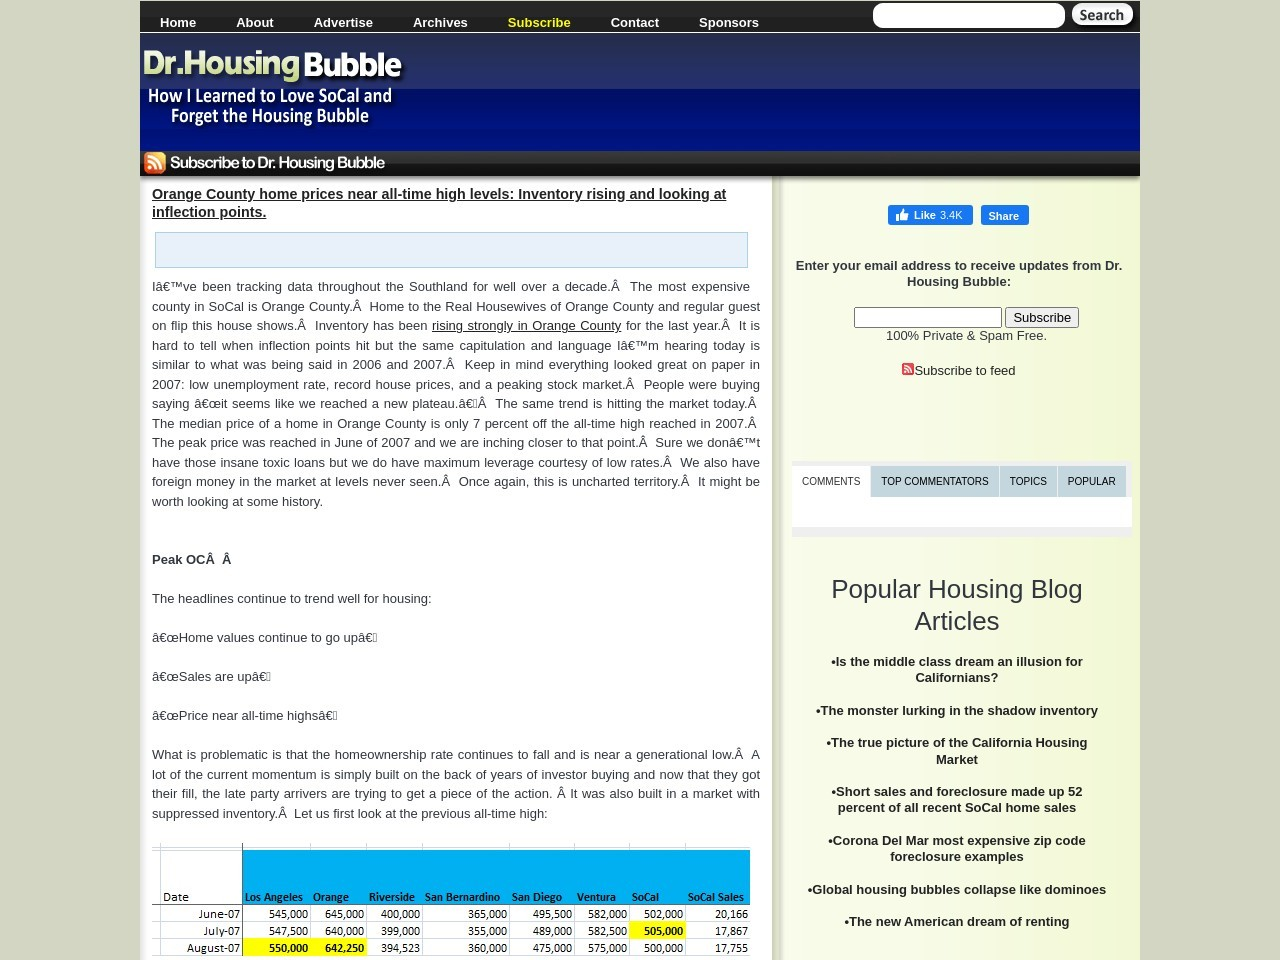 Orange County home prices near all-time high levels – Dr …